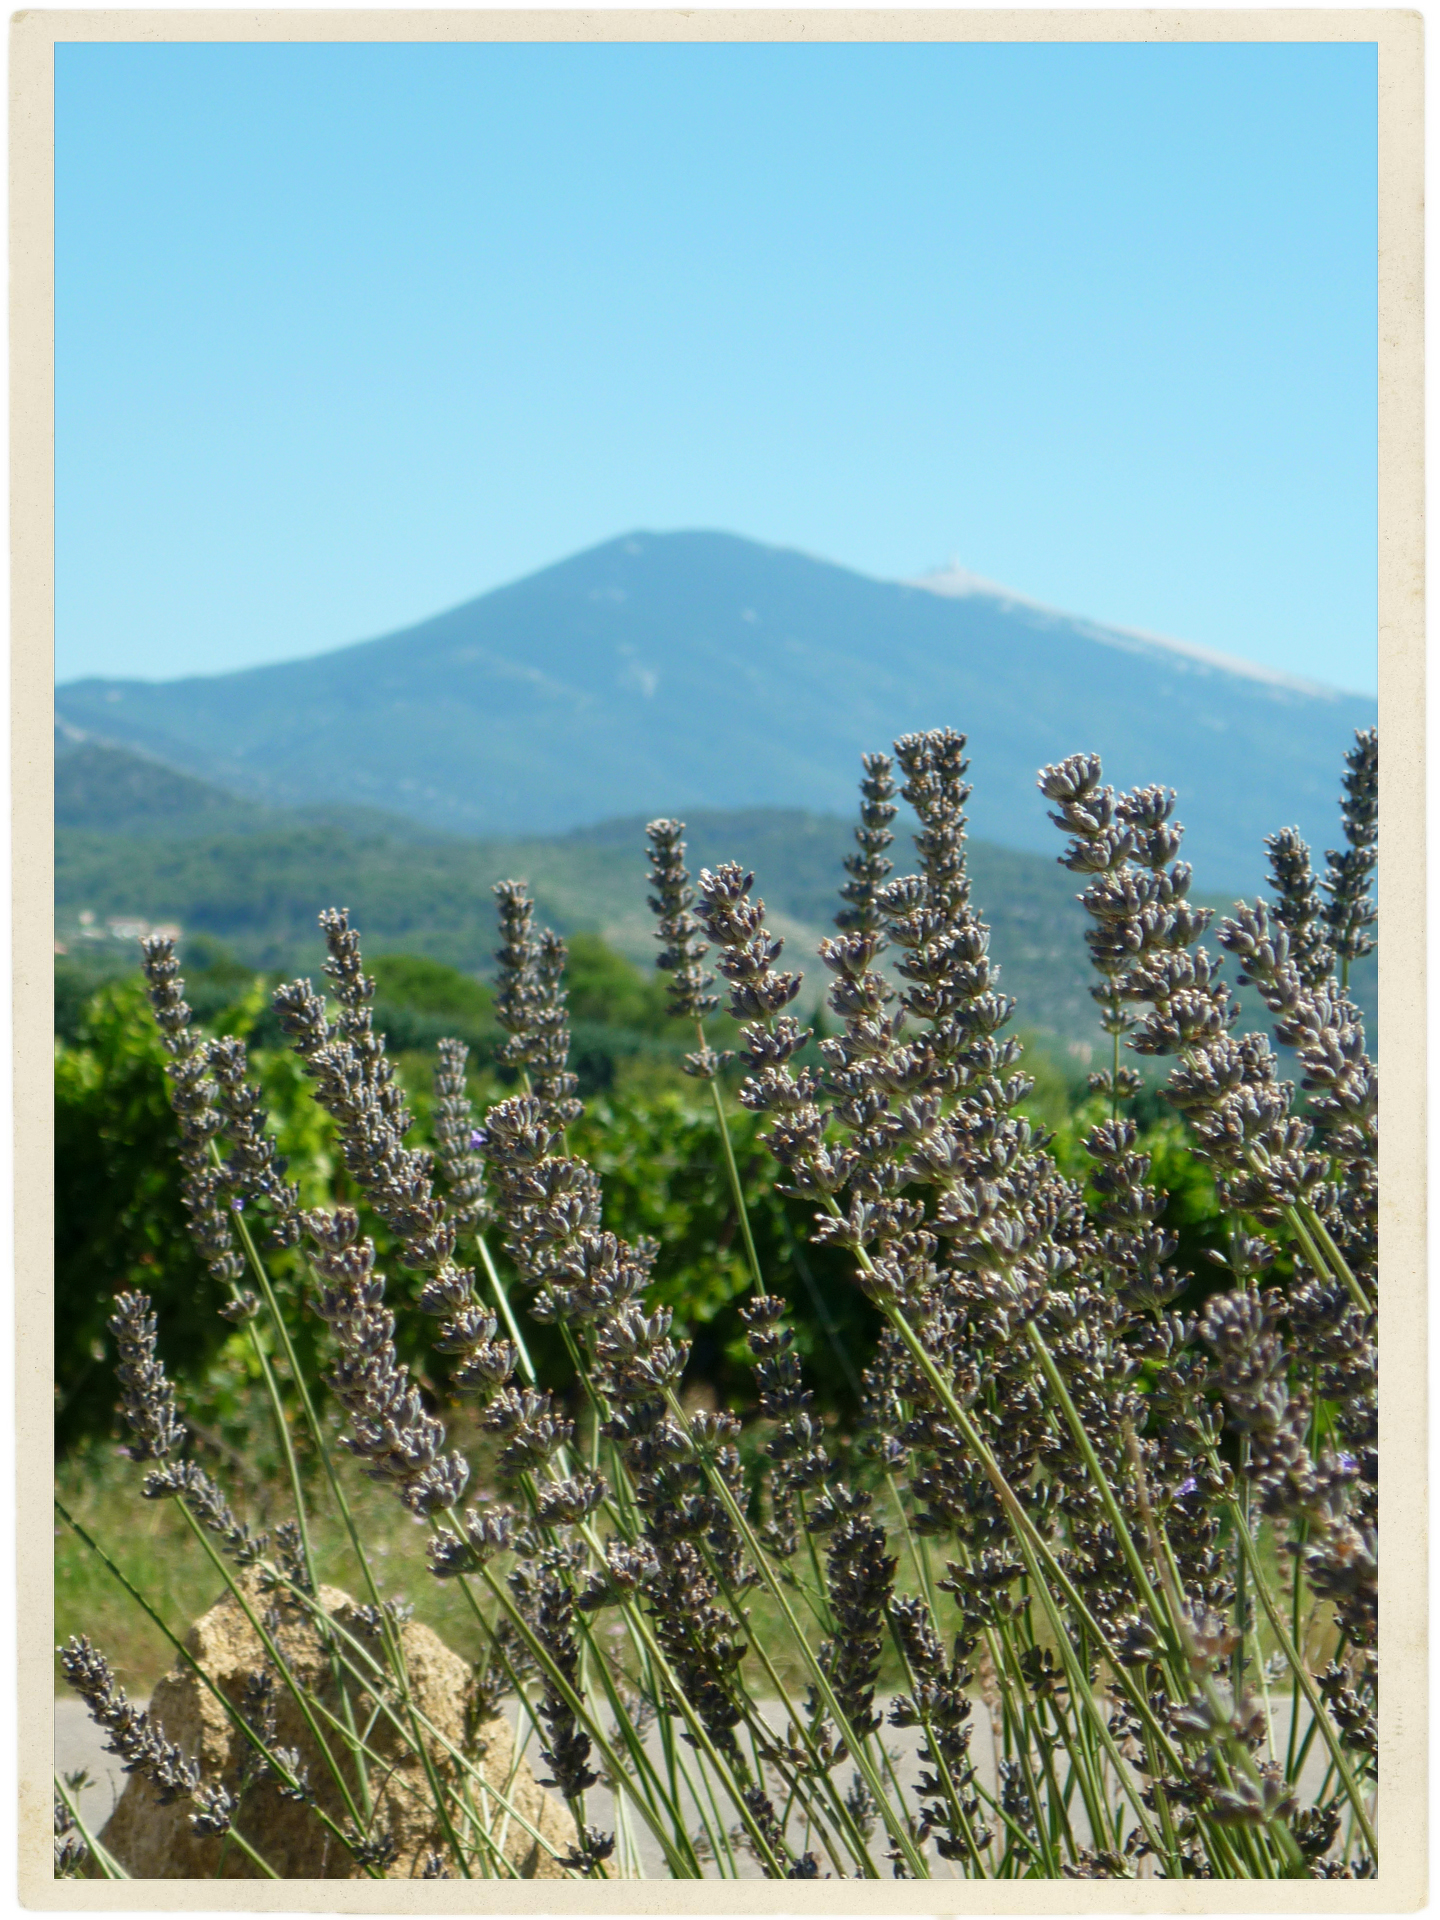 Lavender and the Ventoux. Two of the most beautiful things.